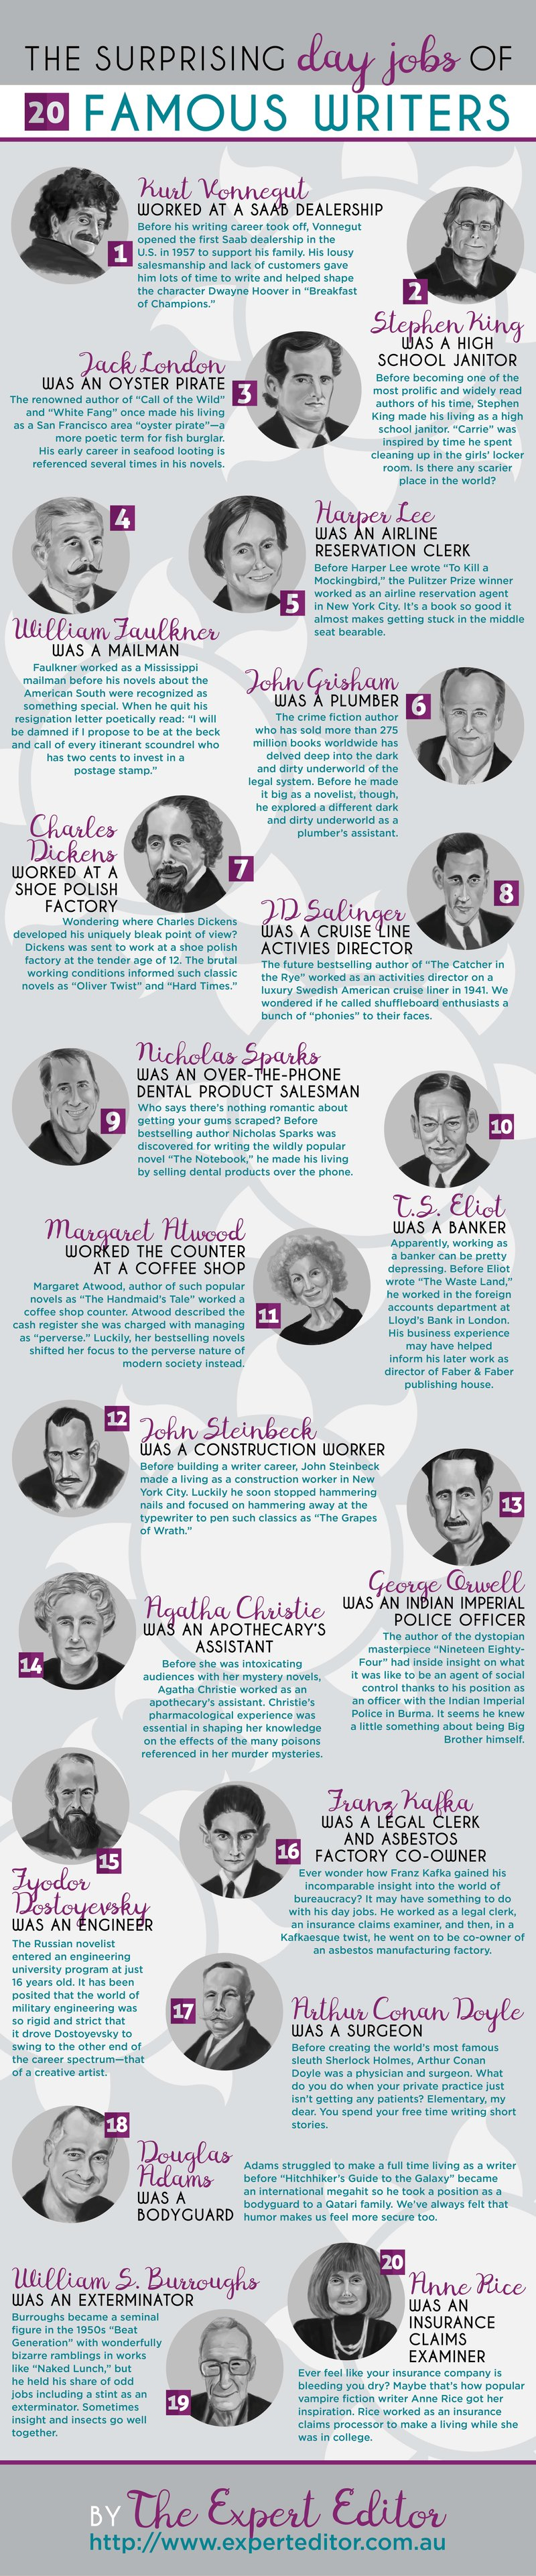 famous writers day jobs